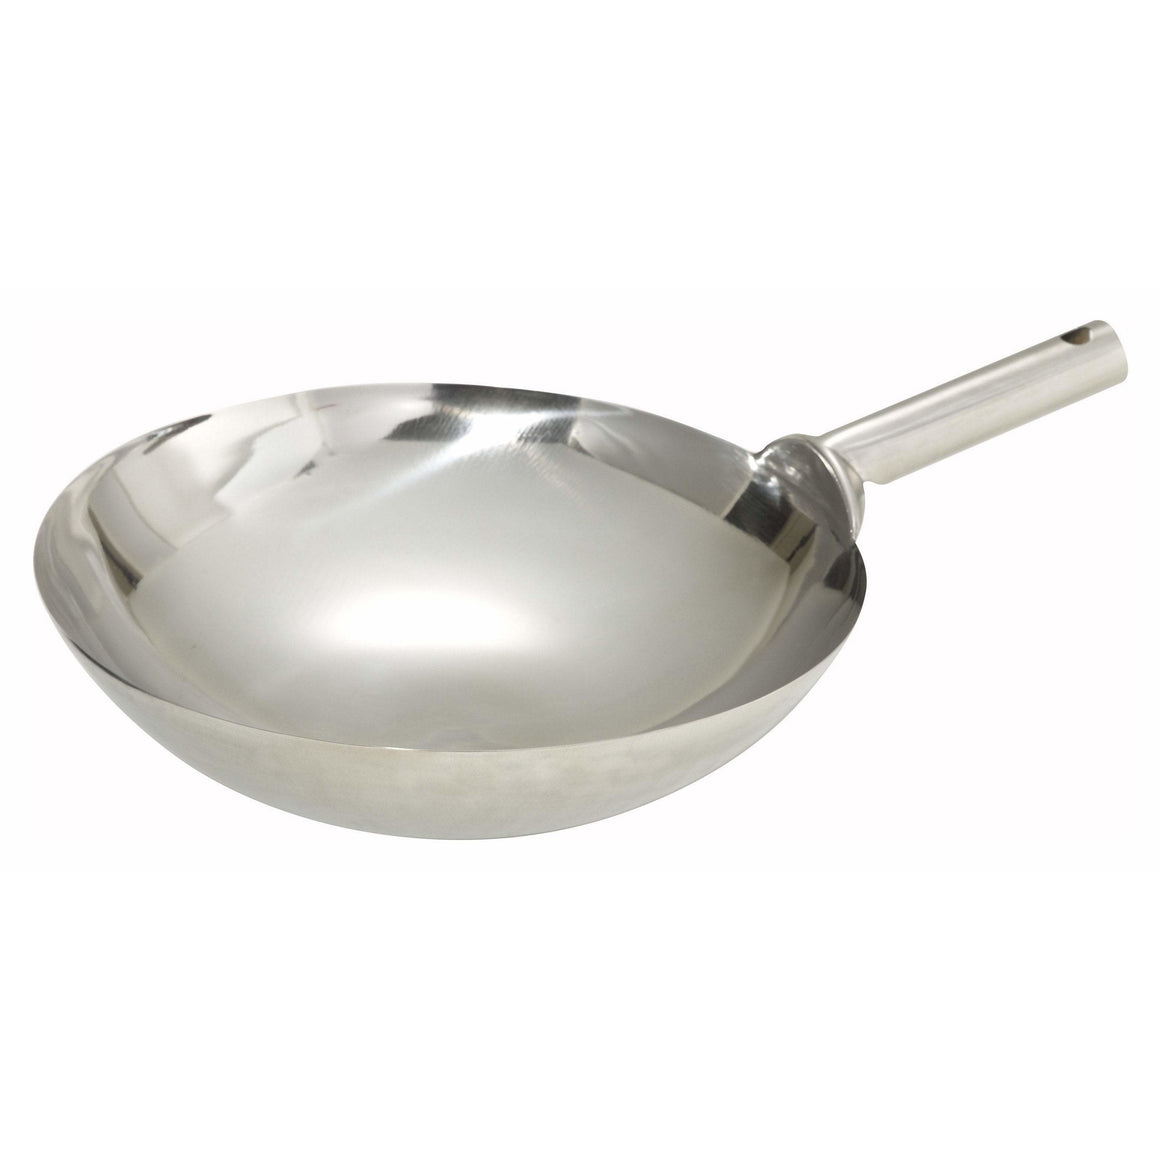 "Winco - WOK-16W - 16"" Stainless Steel Wok, Welded Joint - Cookware"